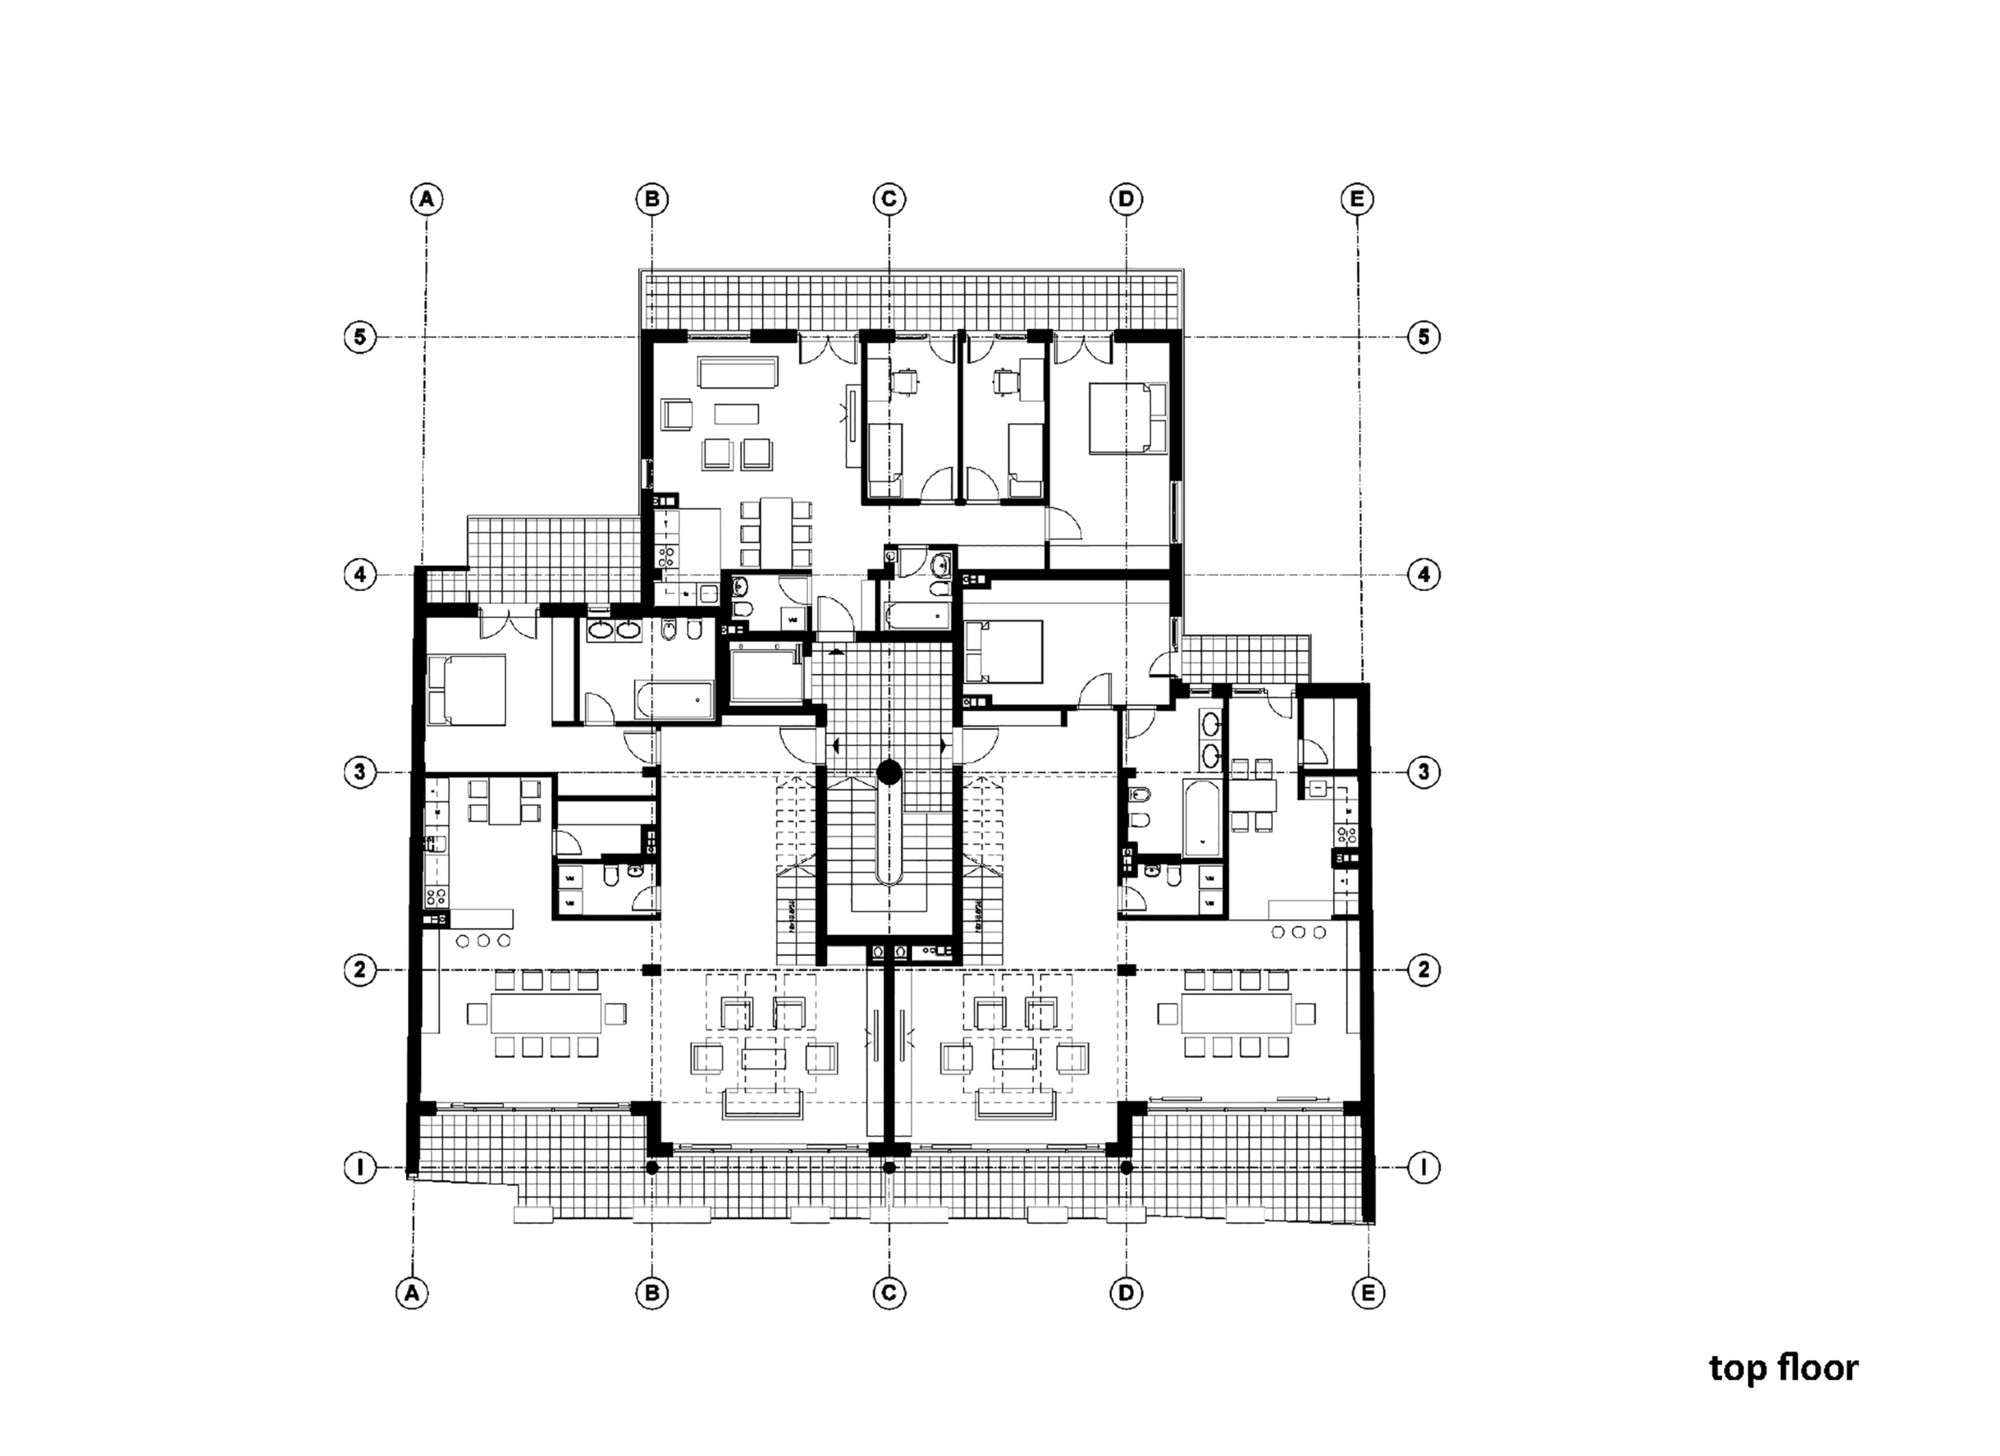 Residential building in vase stajića streettop floor plan